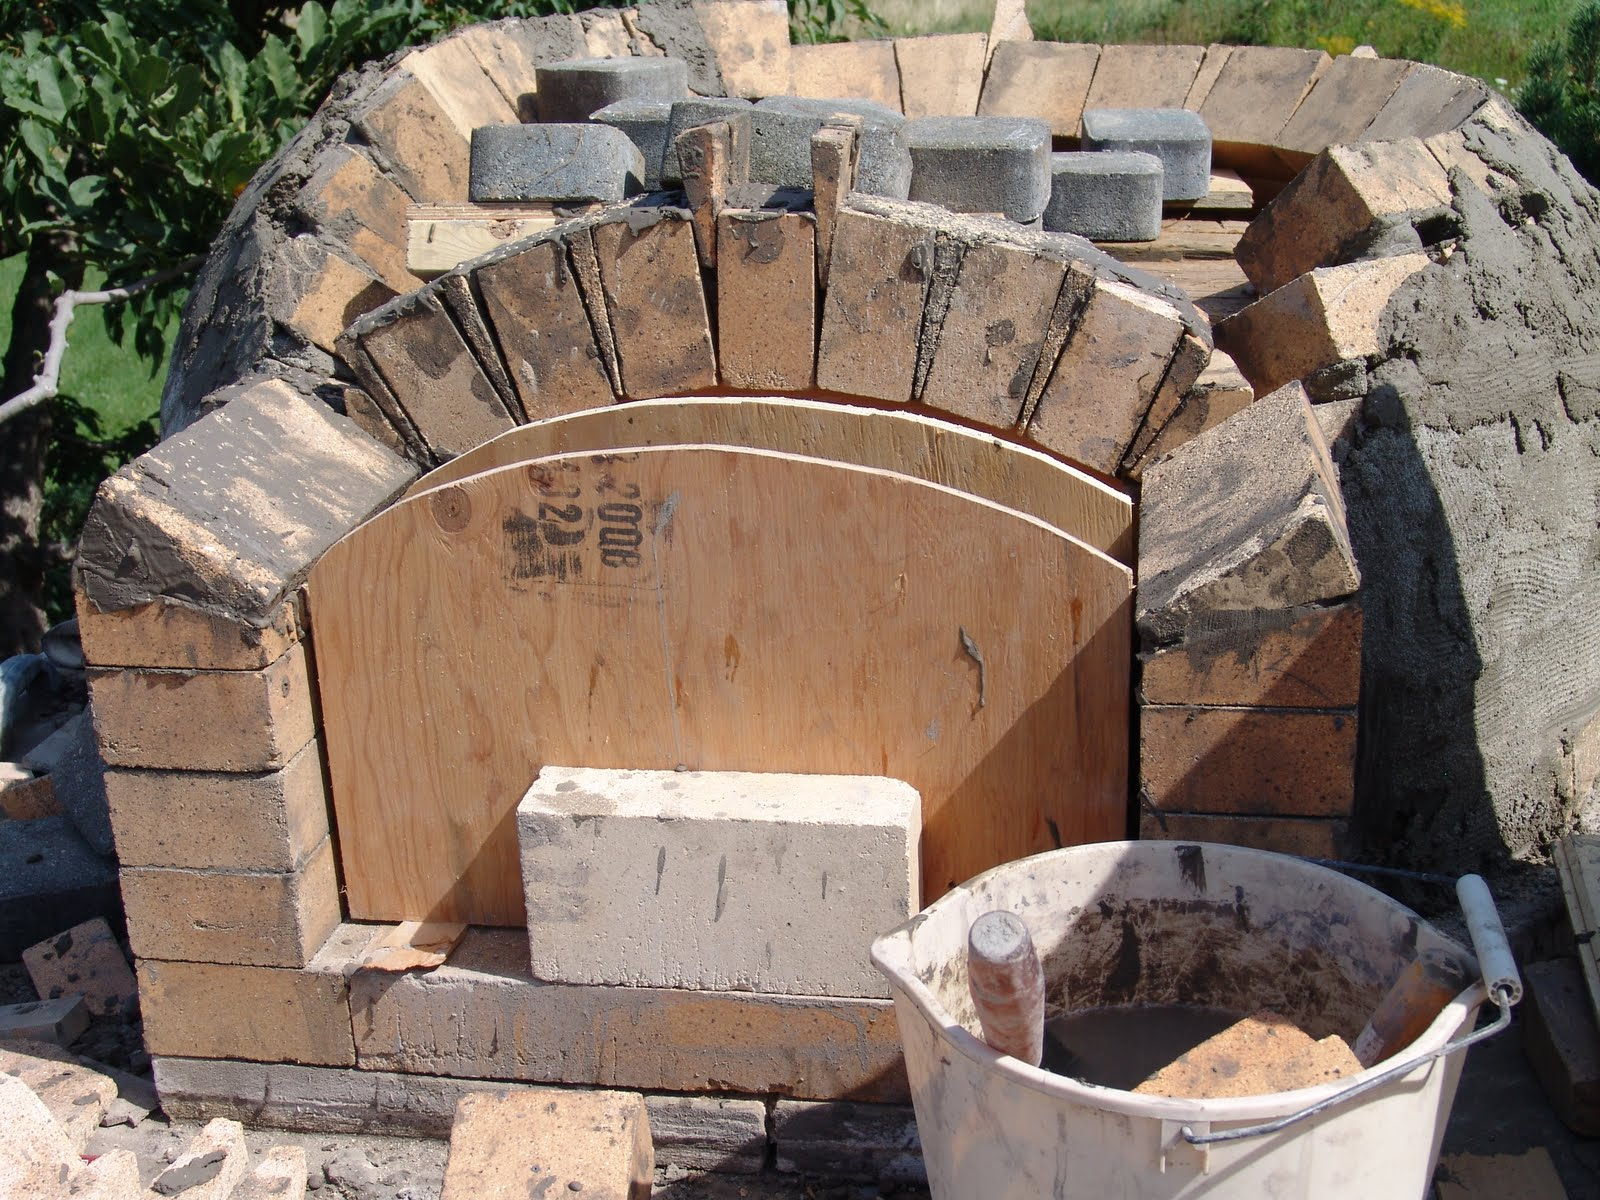 Using Castable Refractory Cement Between Bricks? - DIY Pizza Oven Forum